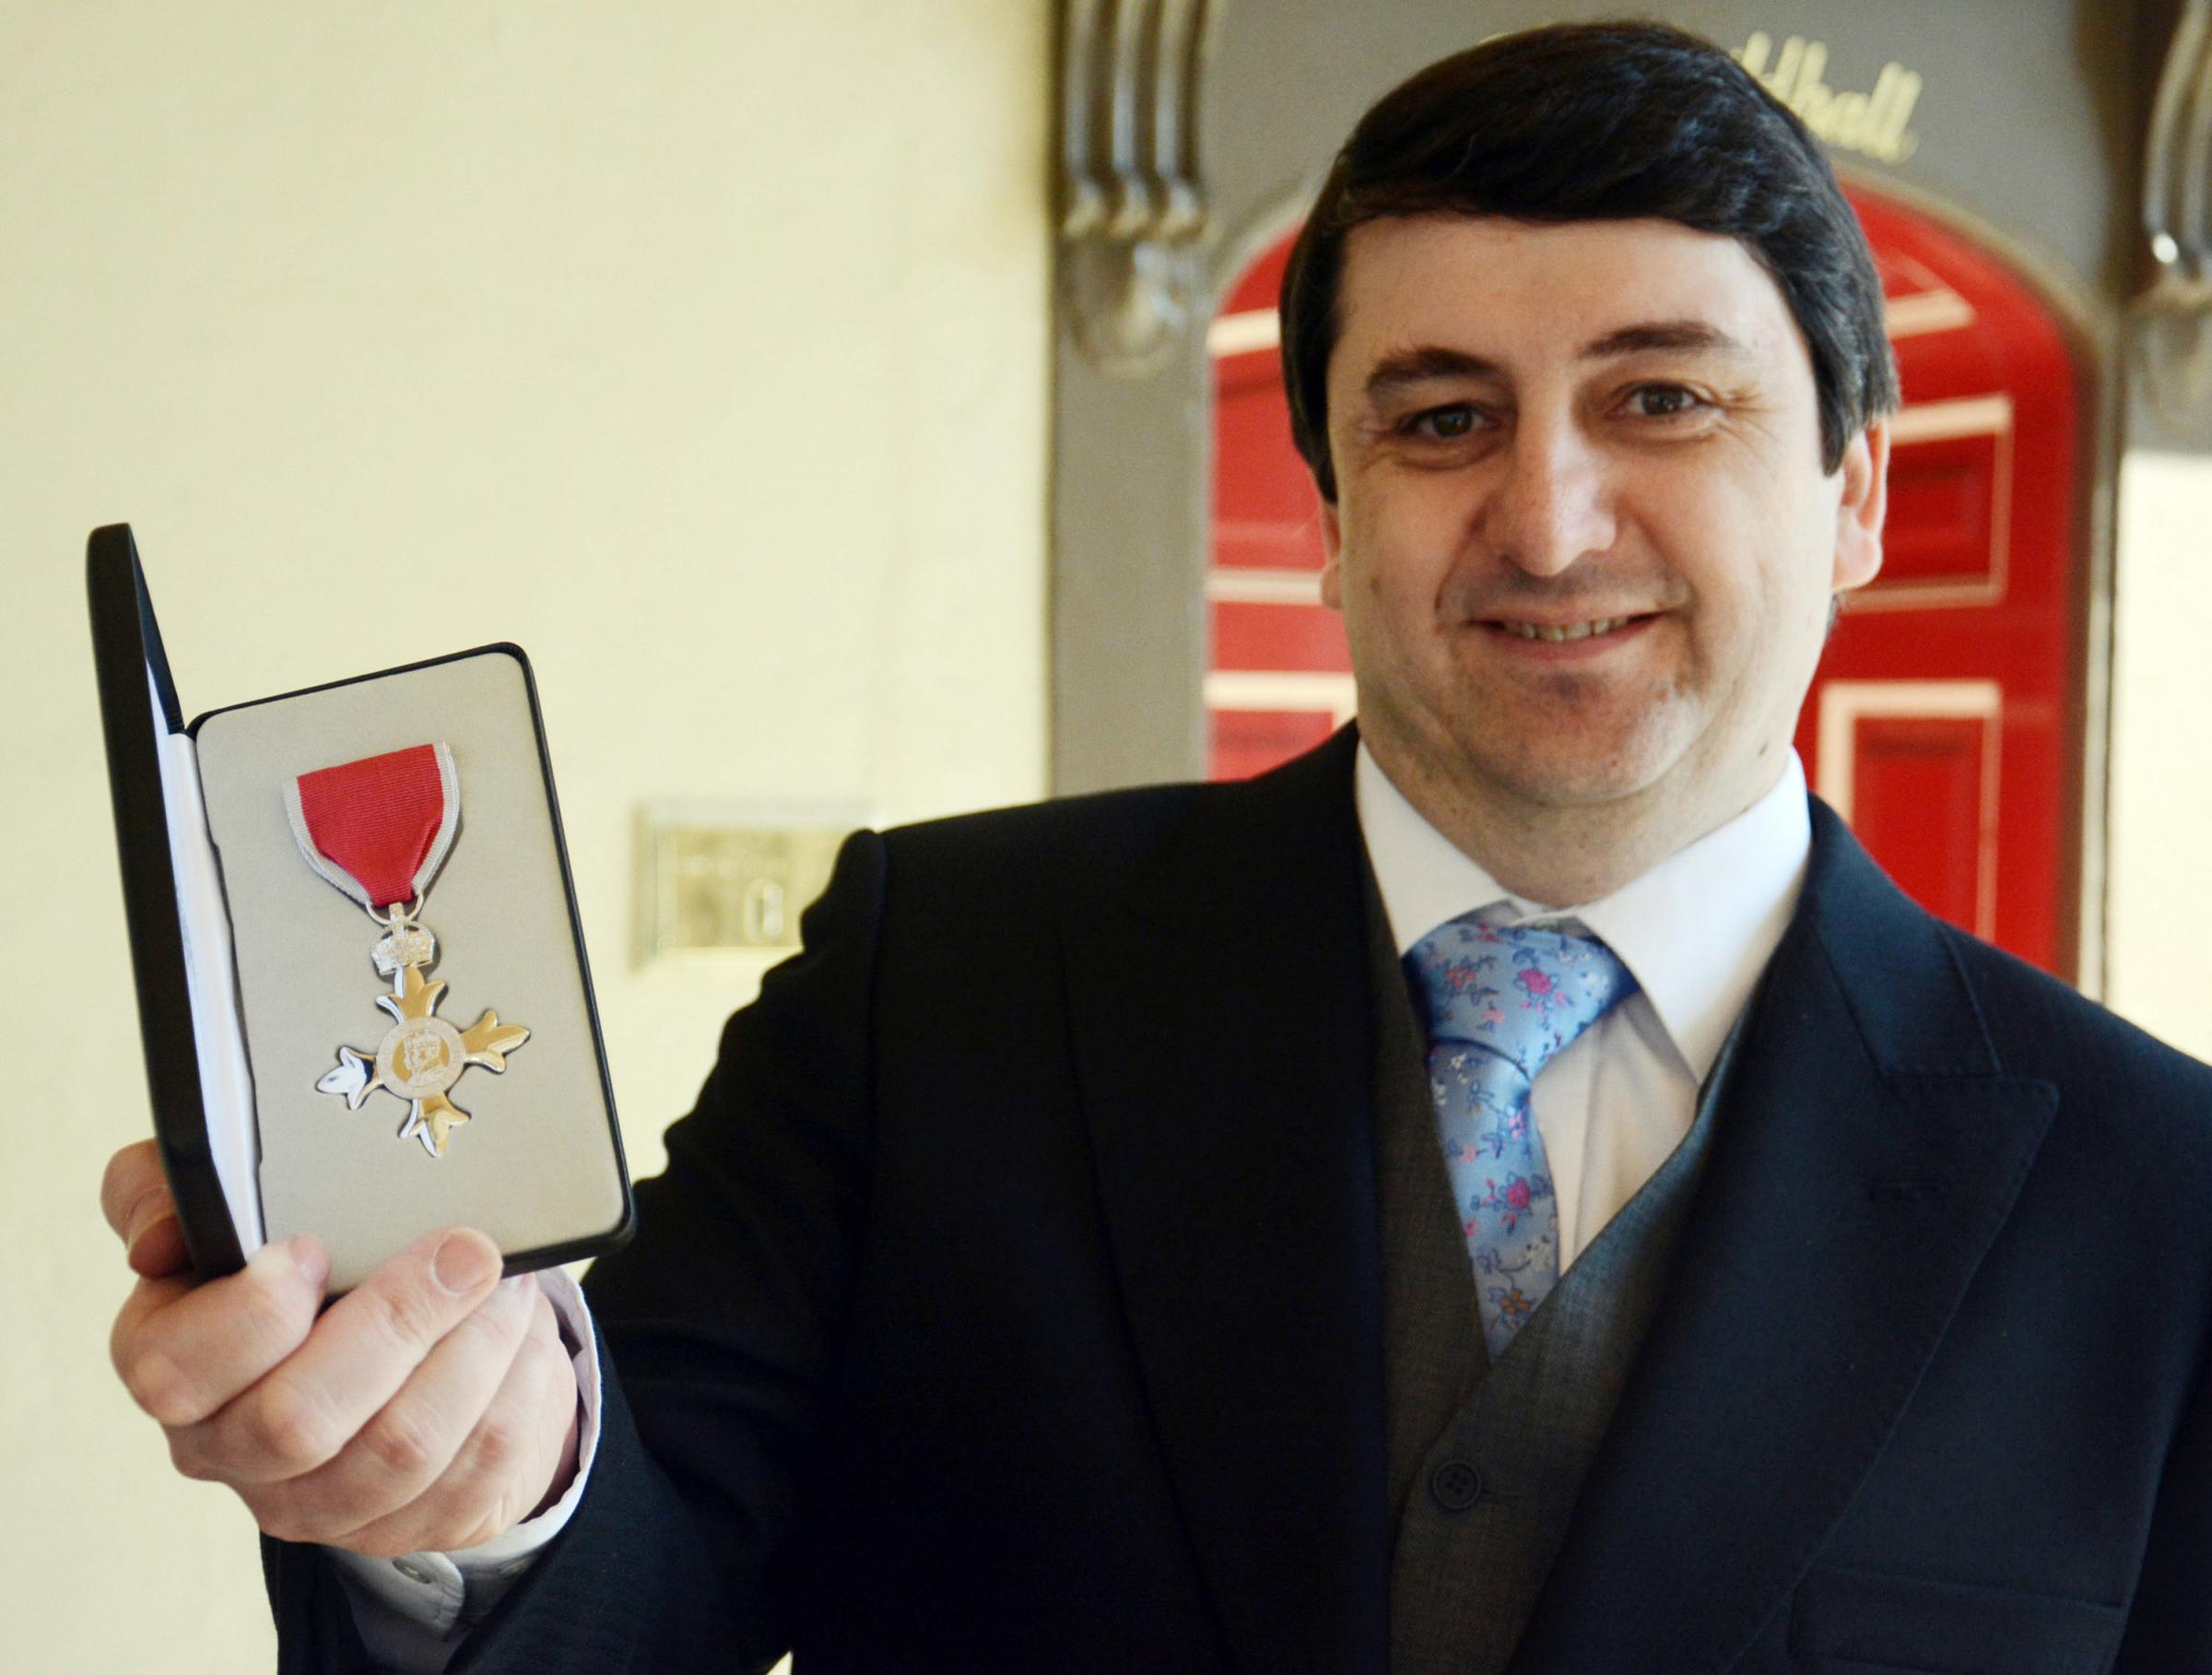 Cllr David Burbage picking up his MBE in Windsor in 2014. PHOTO: EMMA SHEPPARD